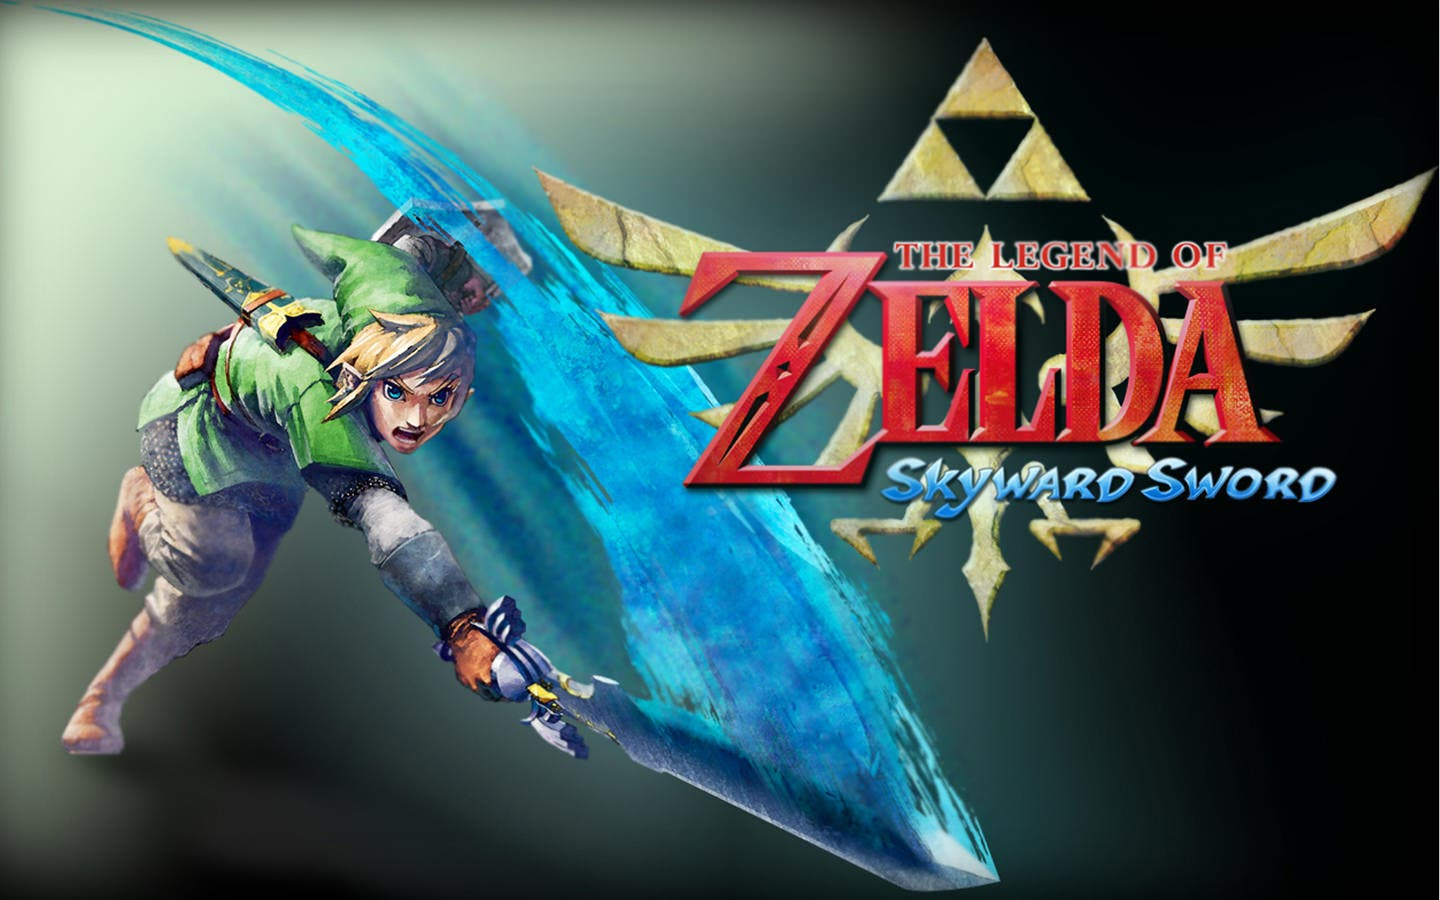 Tráiler de 'The Legend of Zelda: Skyward Sword' de la eShop de Wii U